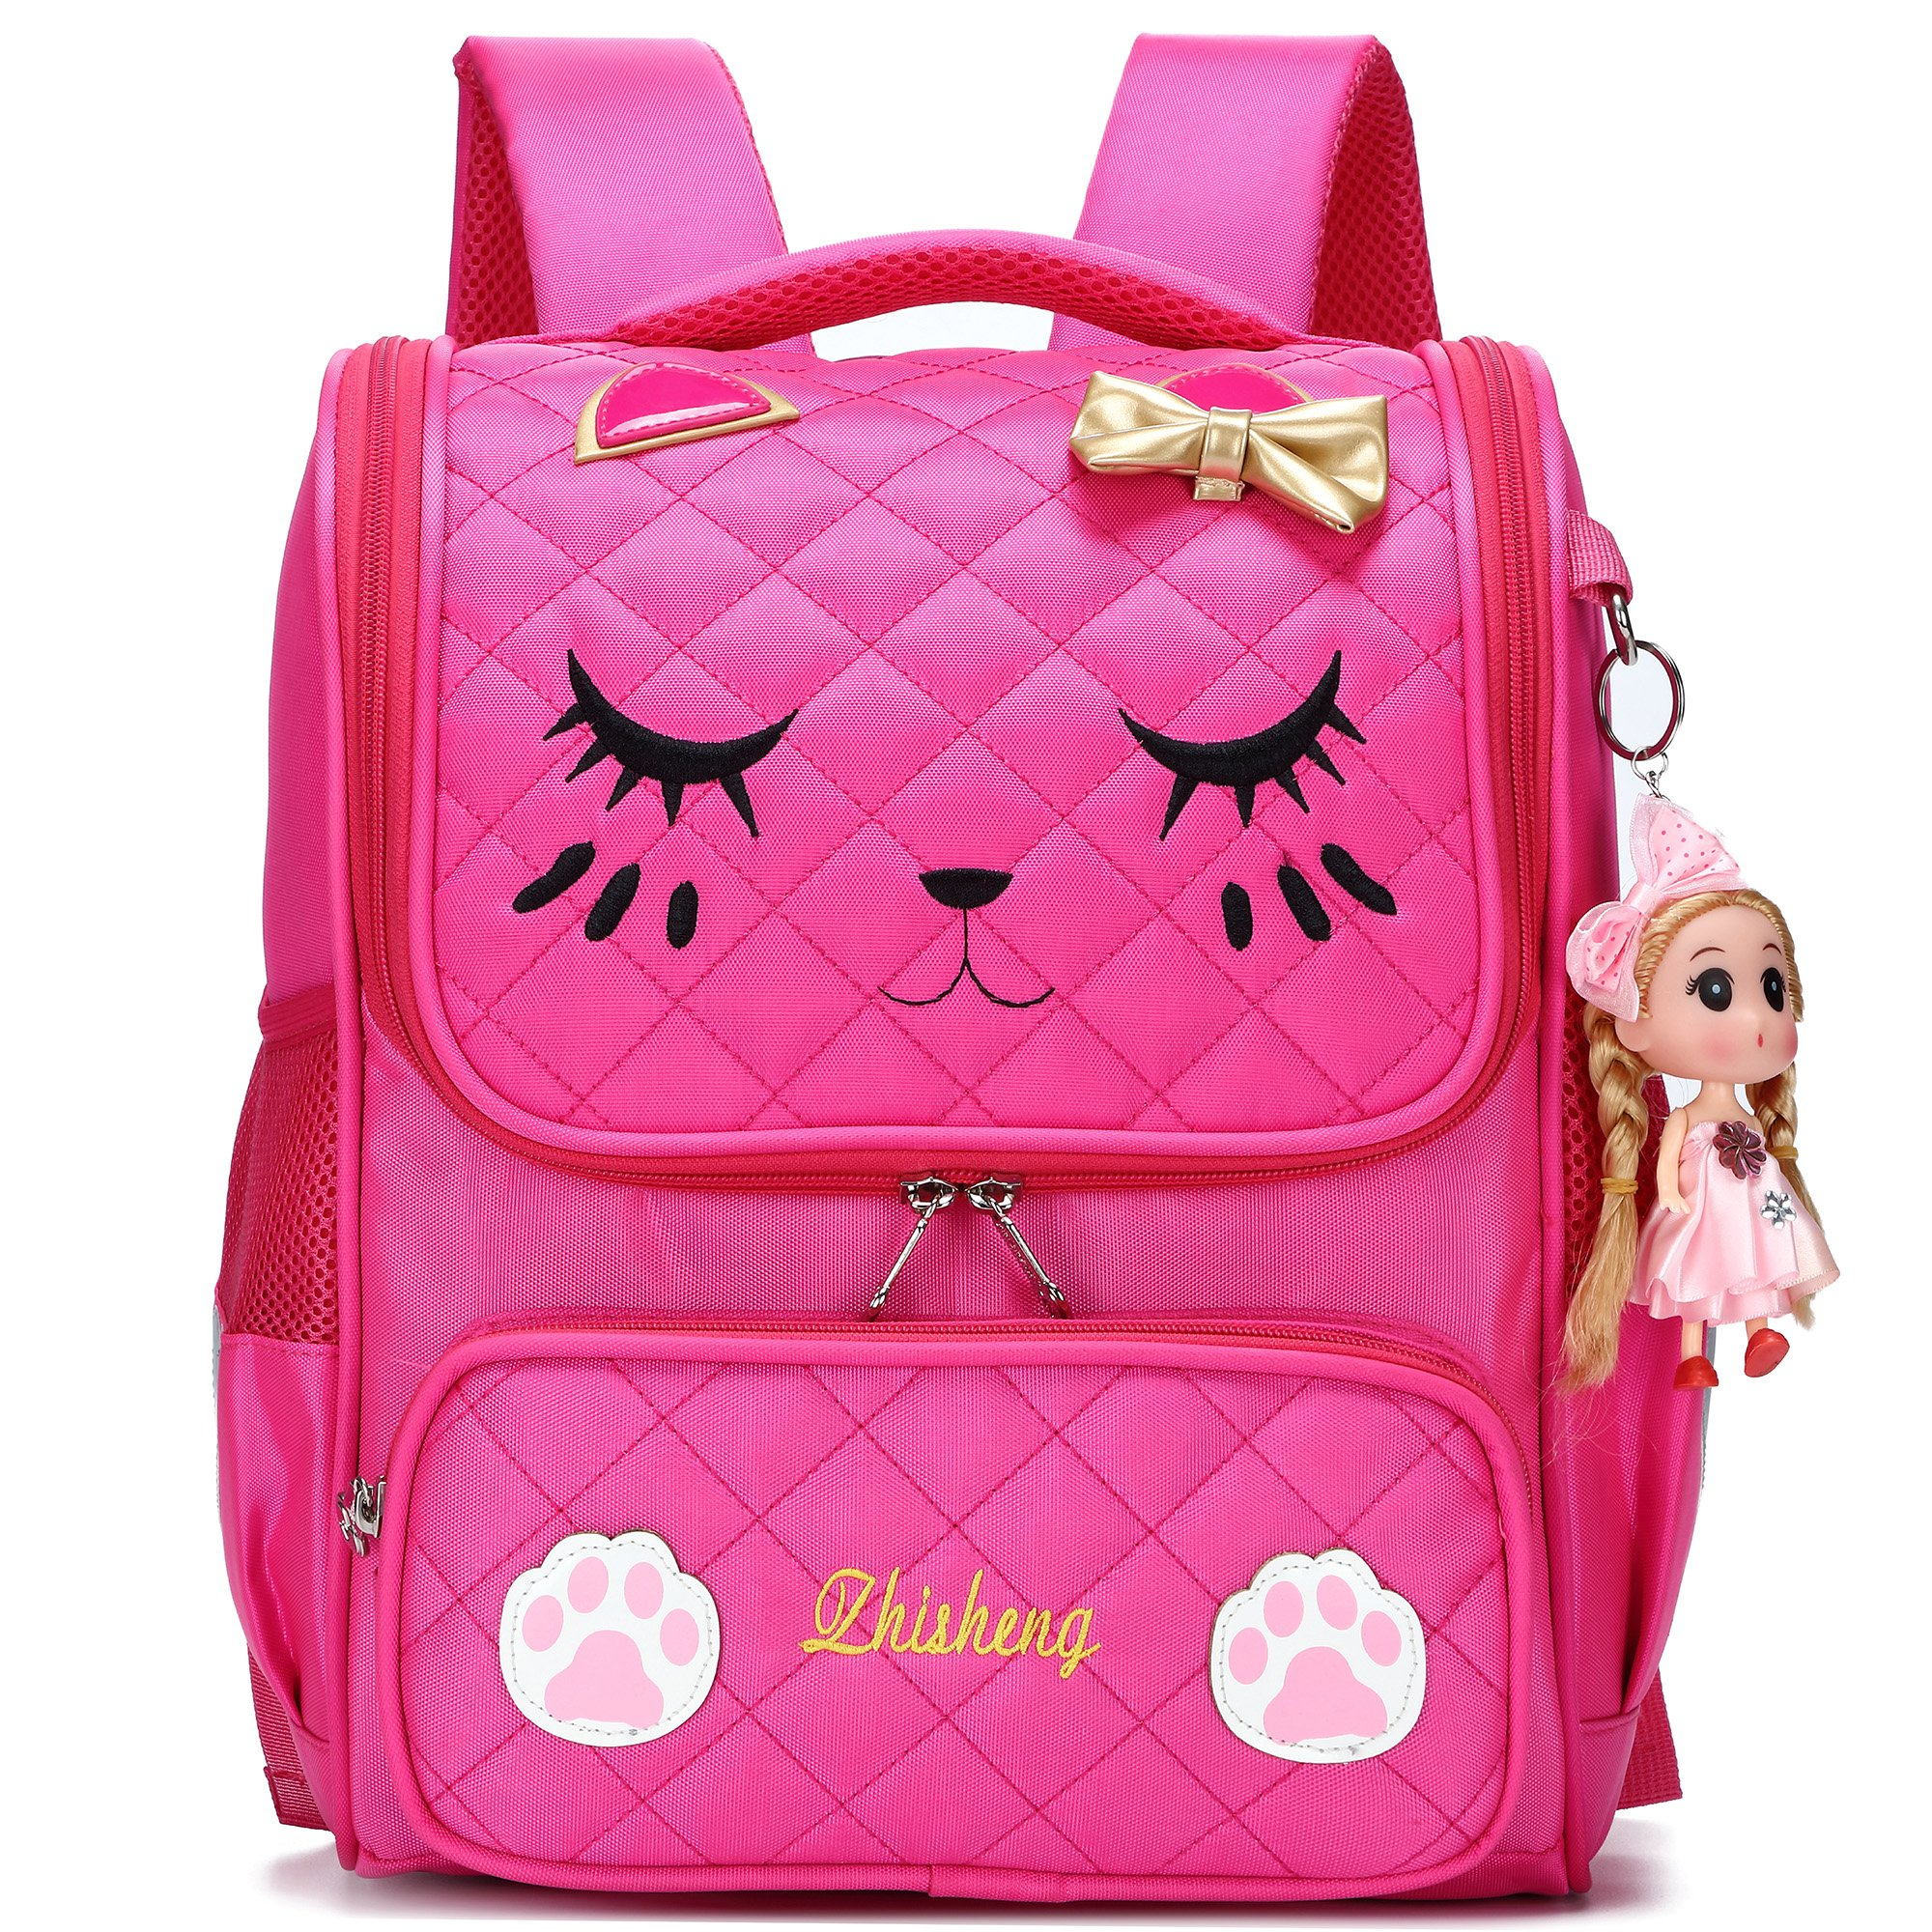 Cute Backpacks for Girls Primary Elementary School Animal Cat Face Kids Bookbags (Rose Red-Small)